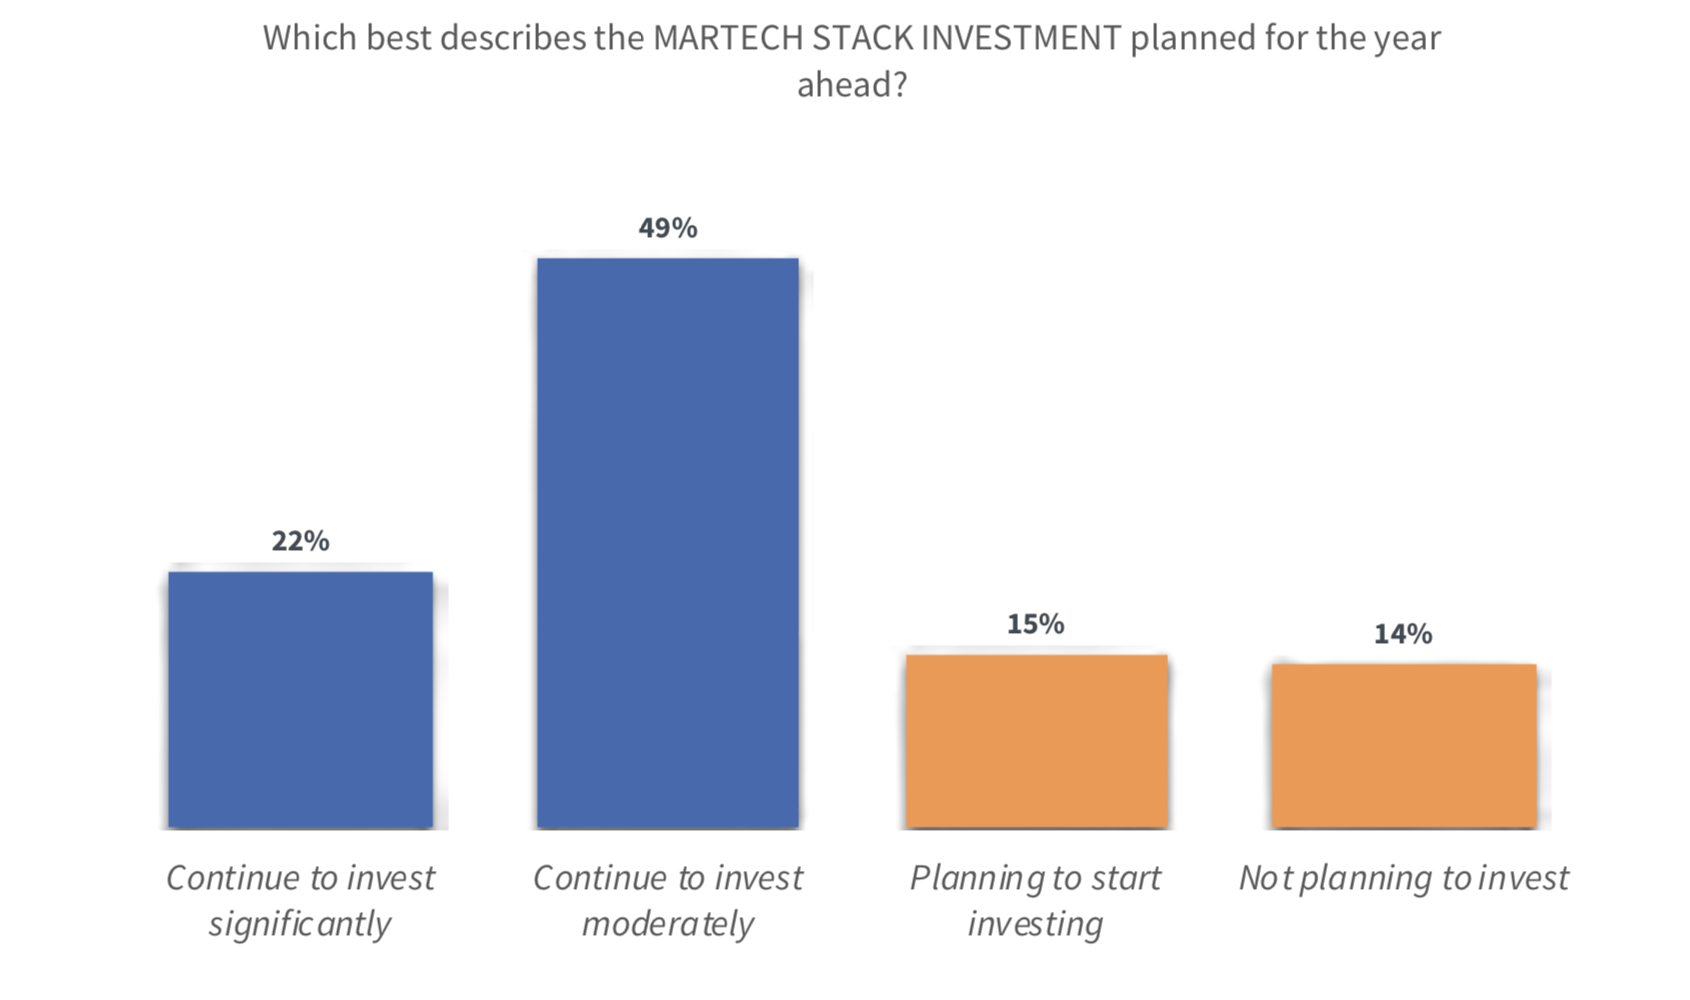 Martech Stack Investment